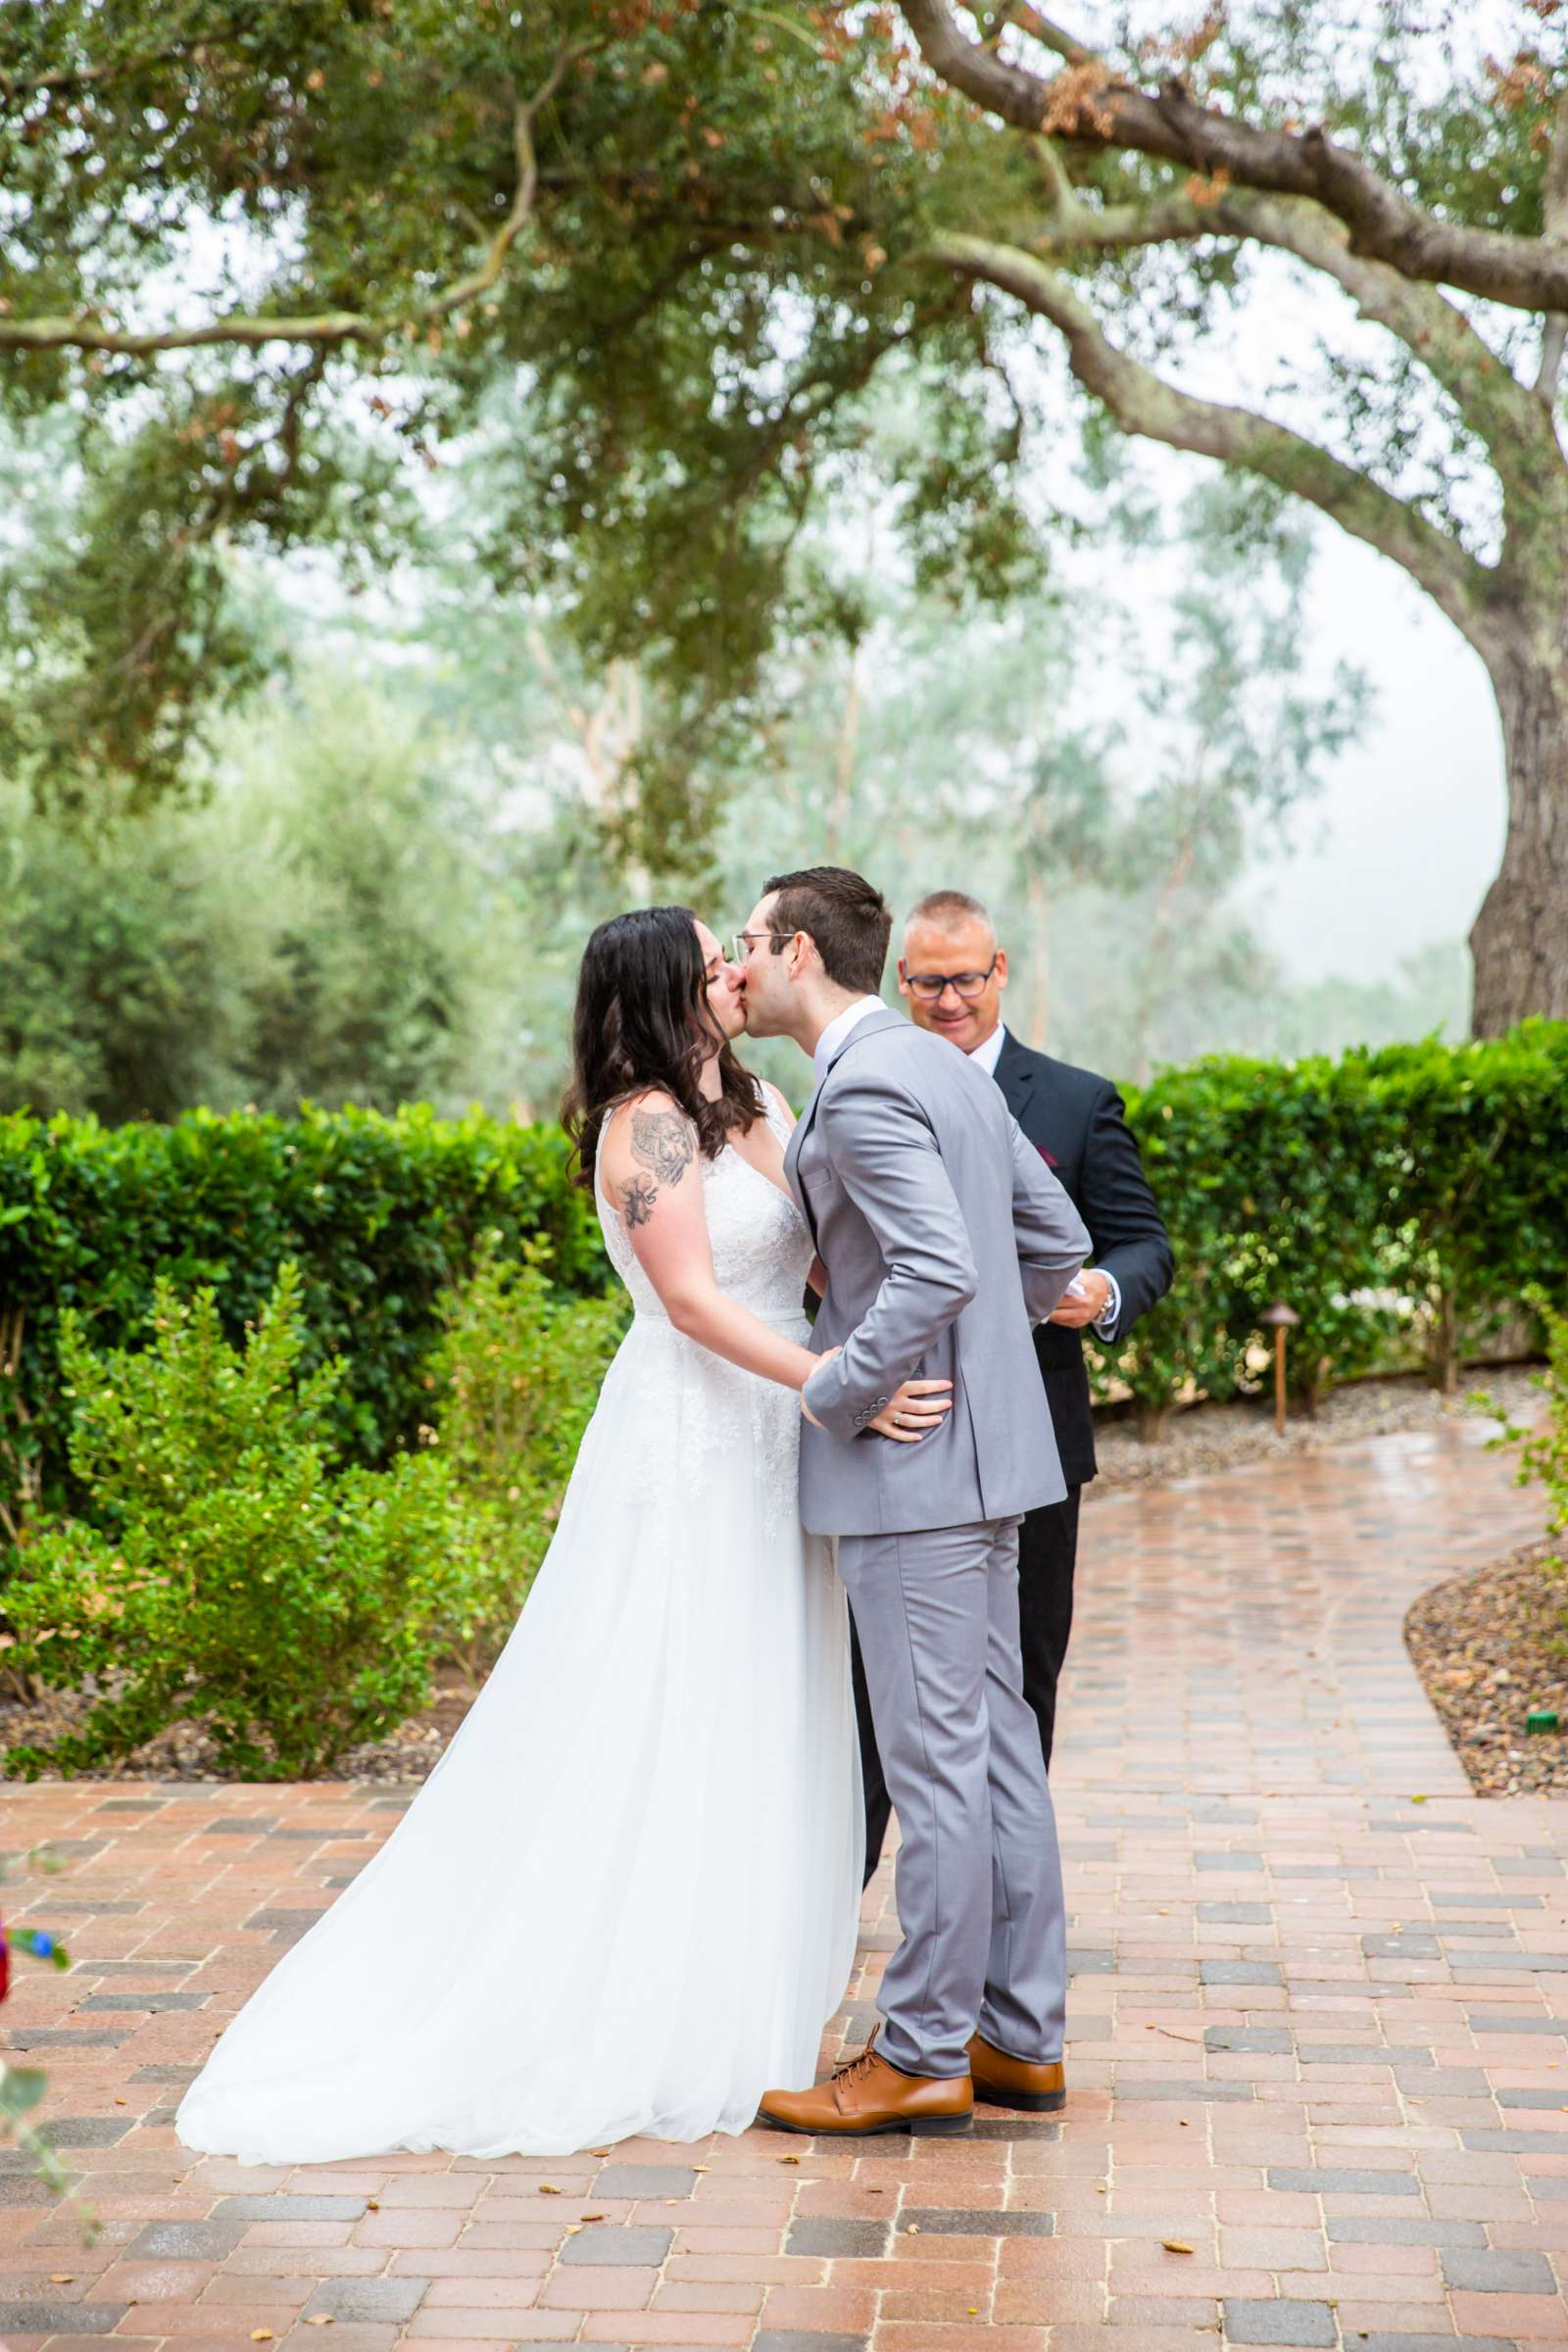 Mt Woodson Castle Wedding, Valerie and Ian Wedding Photo #71 by True Photography